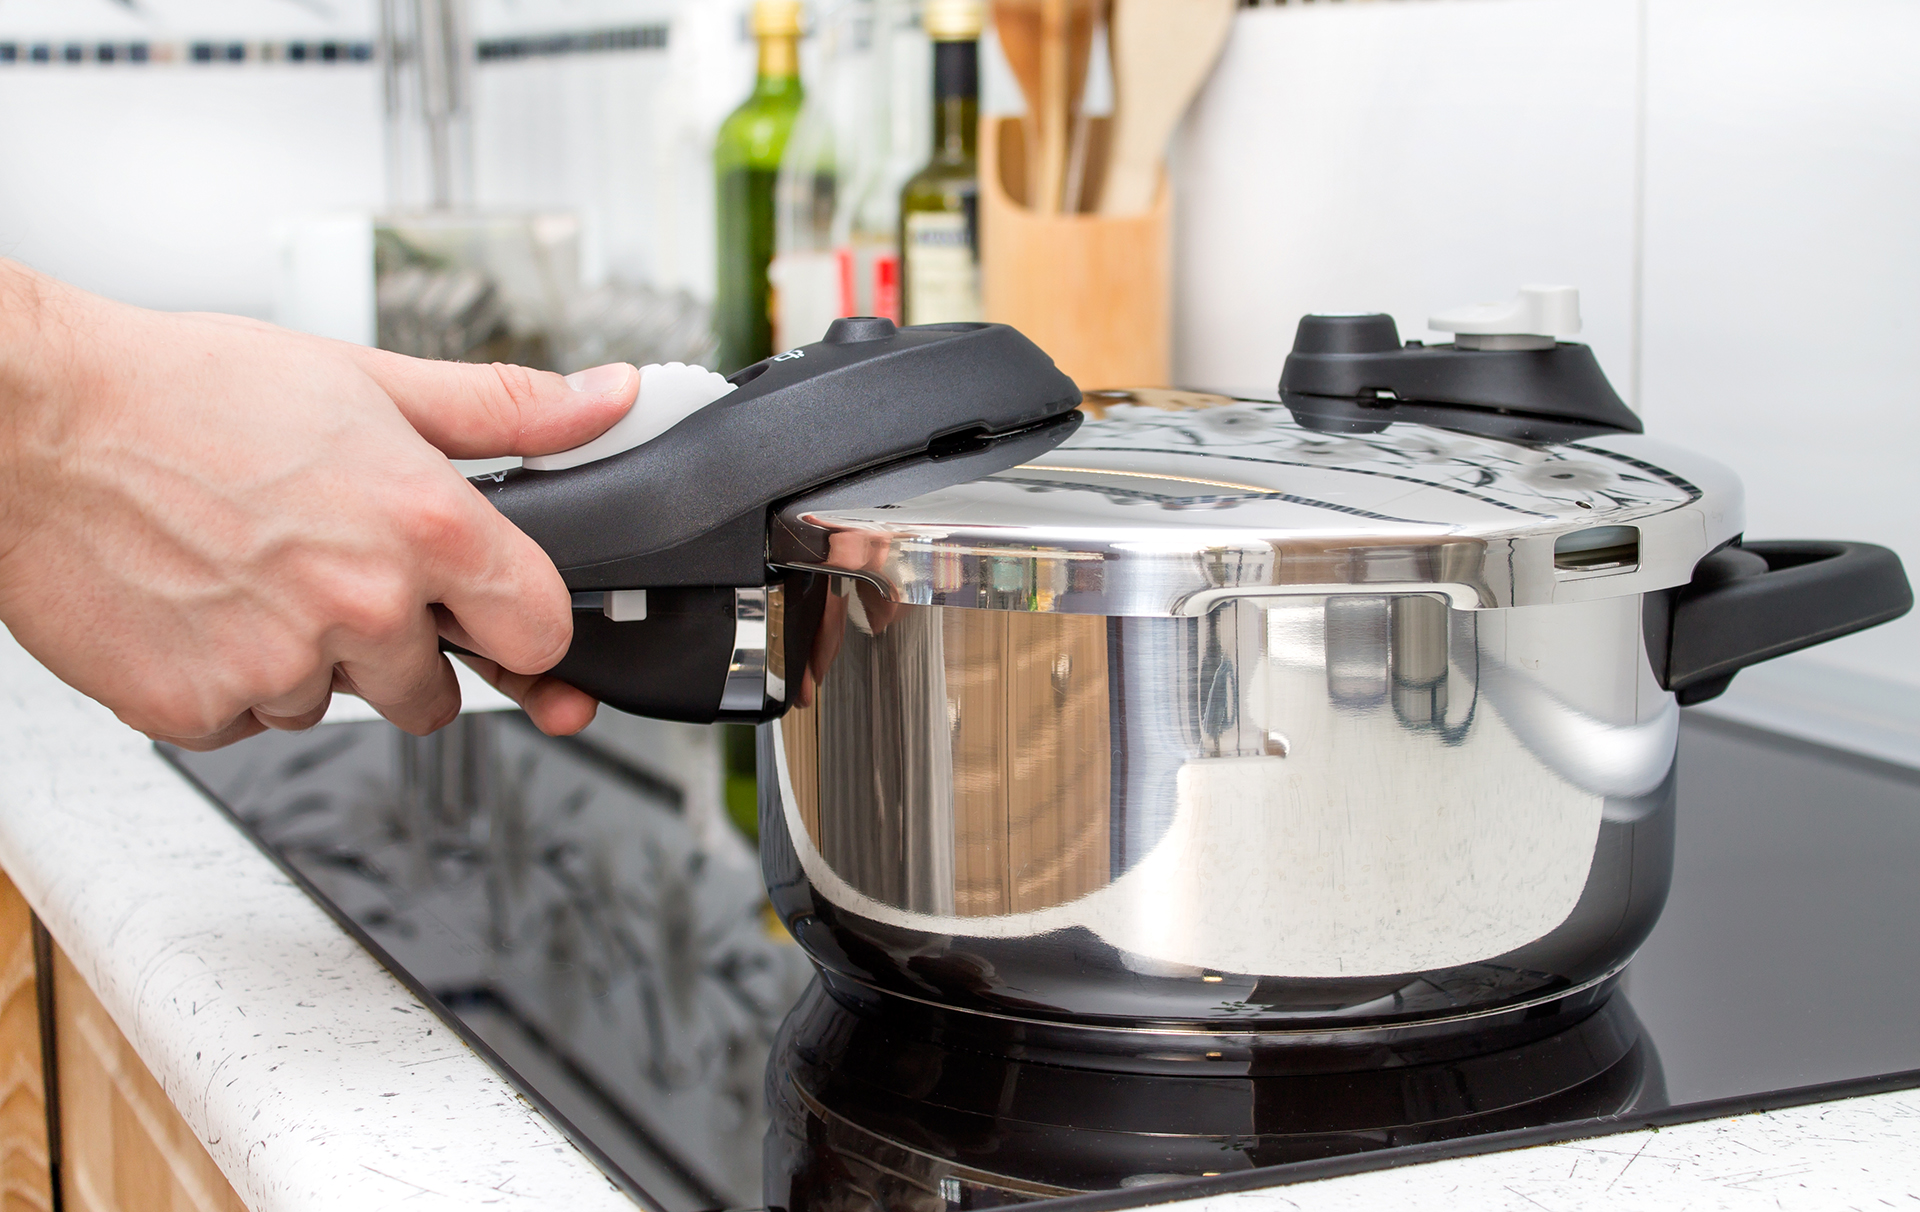 What Size Pressure Cooker Do I Need? 1